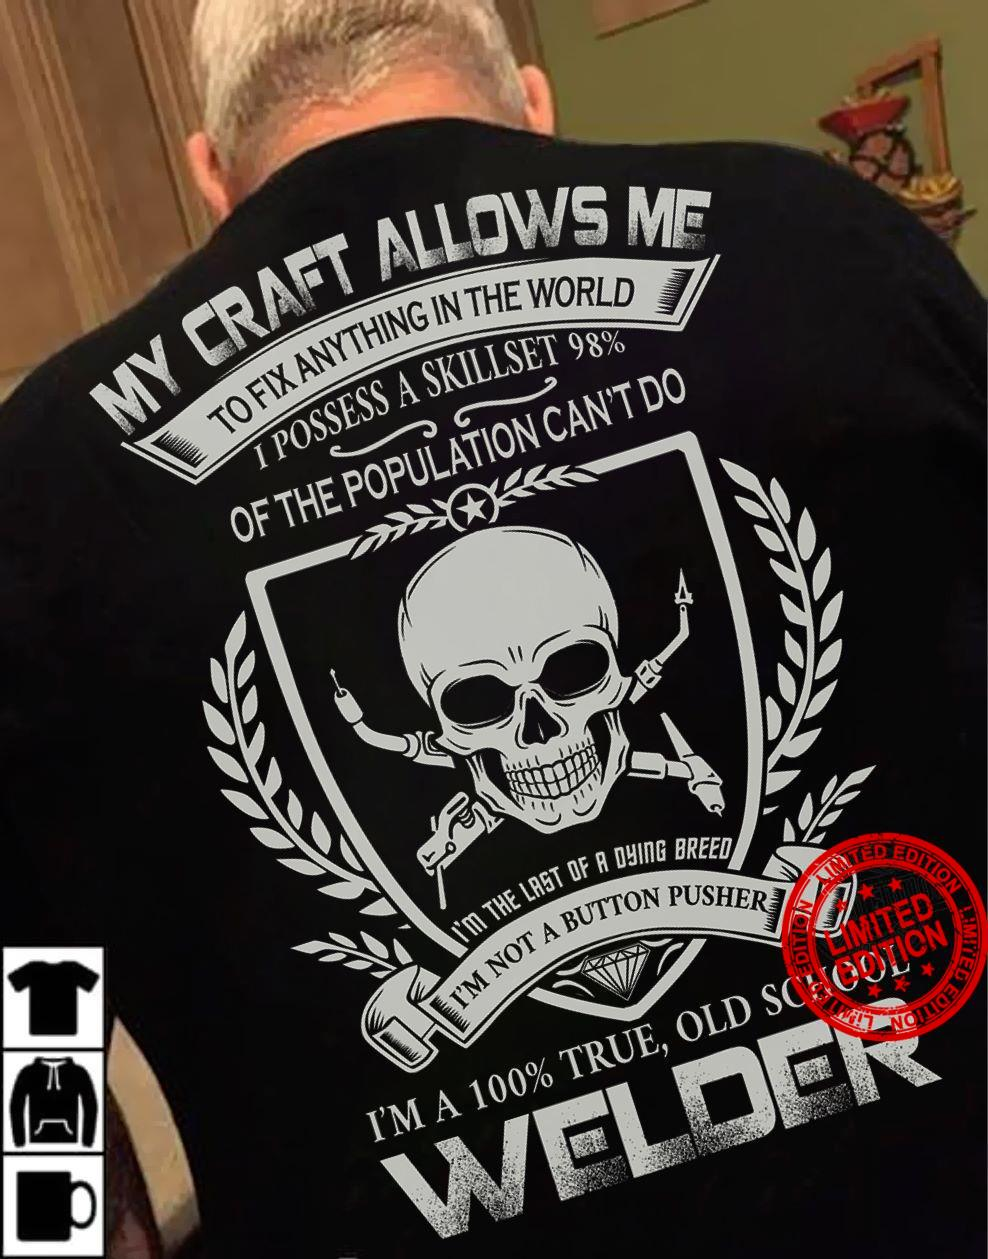 My Craft Allows Me To Fix Anything In The World I Possess A Skill Set 98% Of The Population Can't Do I'm Q 100% True Old School Welder Shirt